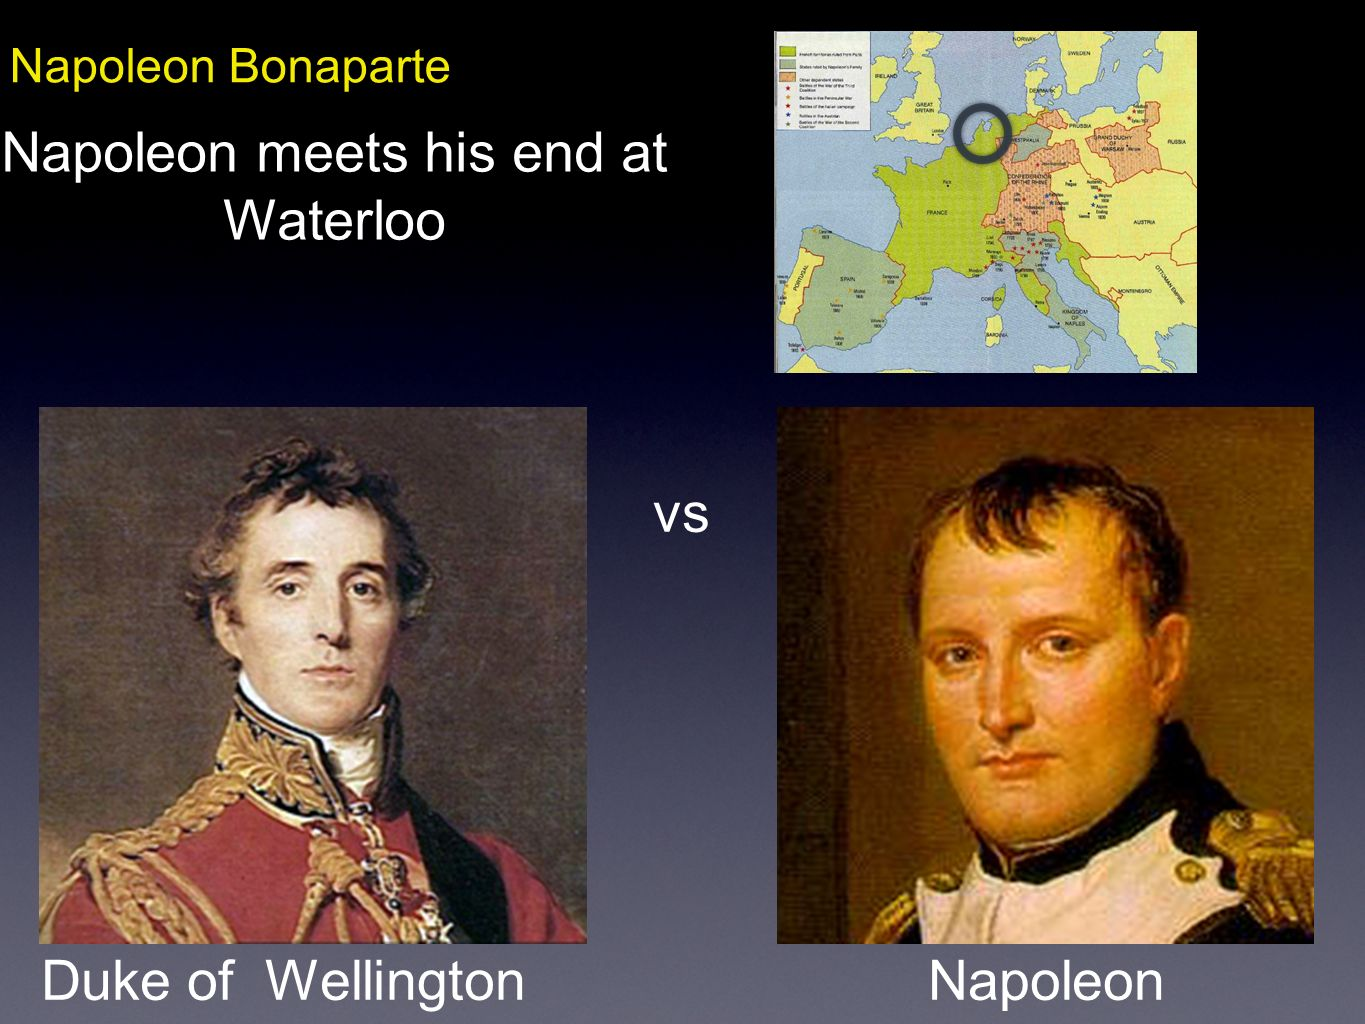 Napoleon meets his end at Waterloo